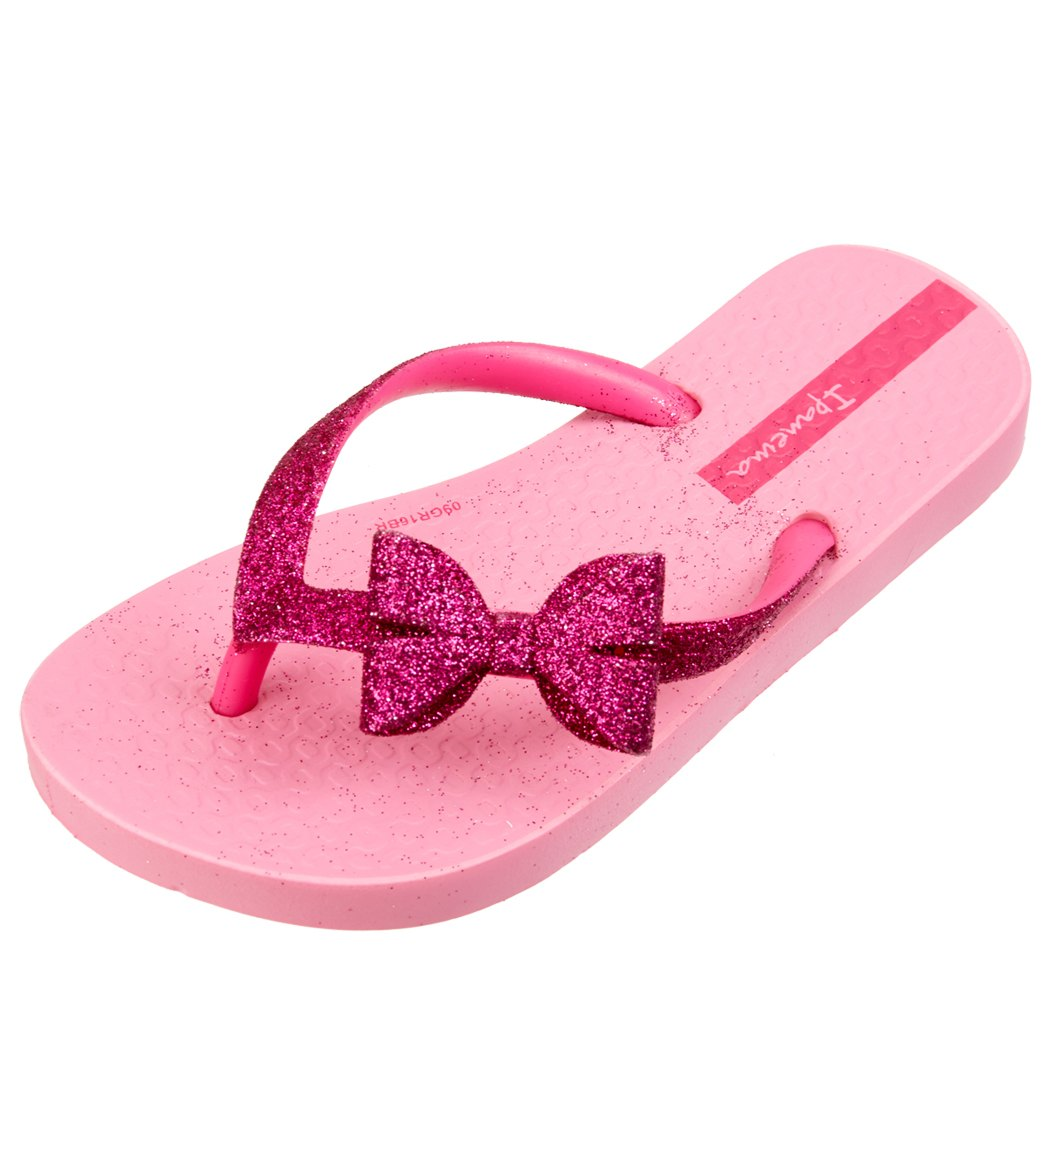 8ffc1d275684 Ipanema Girl s Glitter Kids Sandal IV at SwimOutlet.com